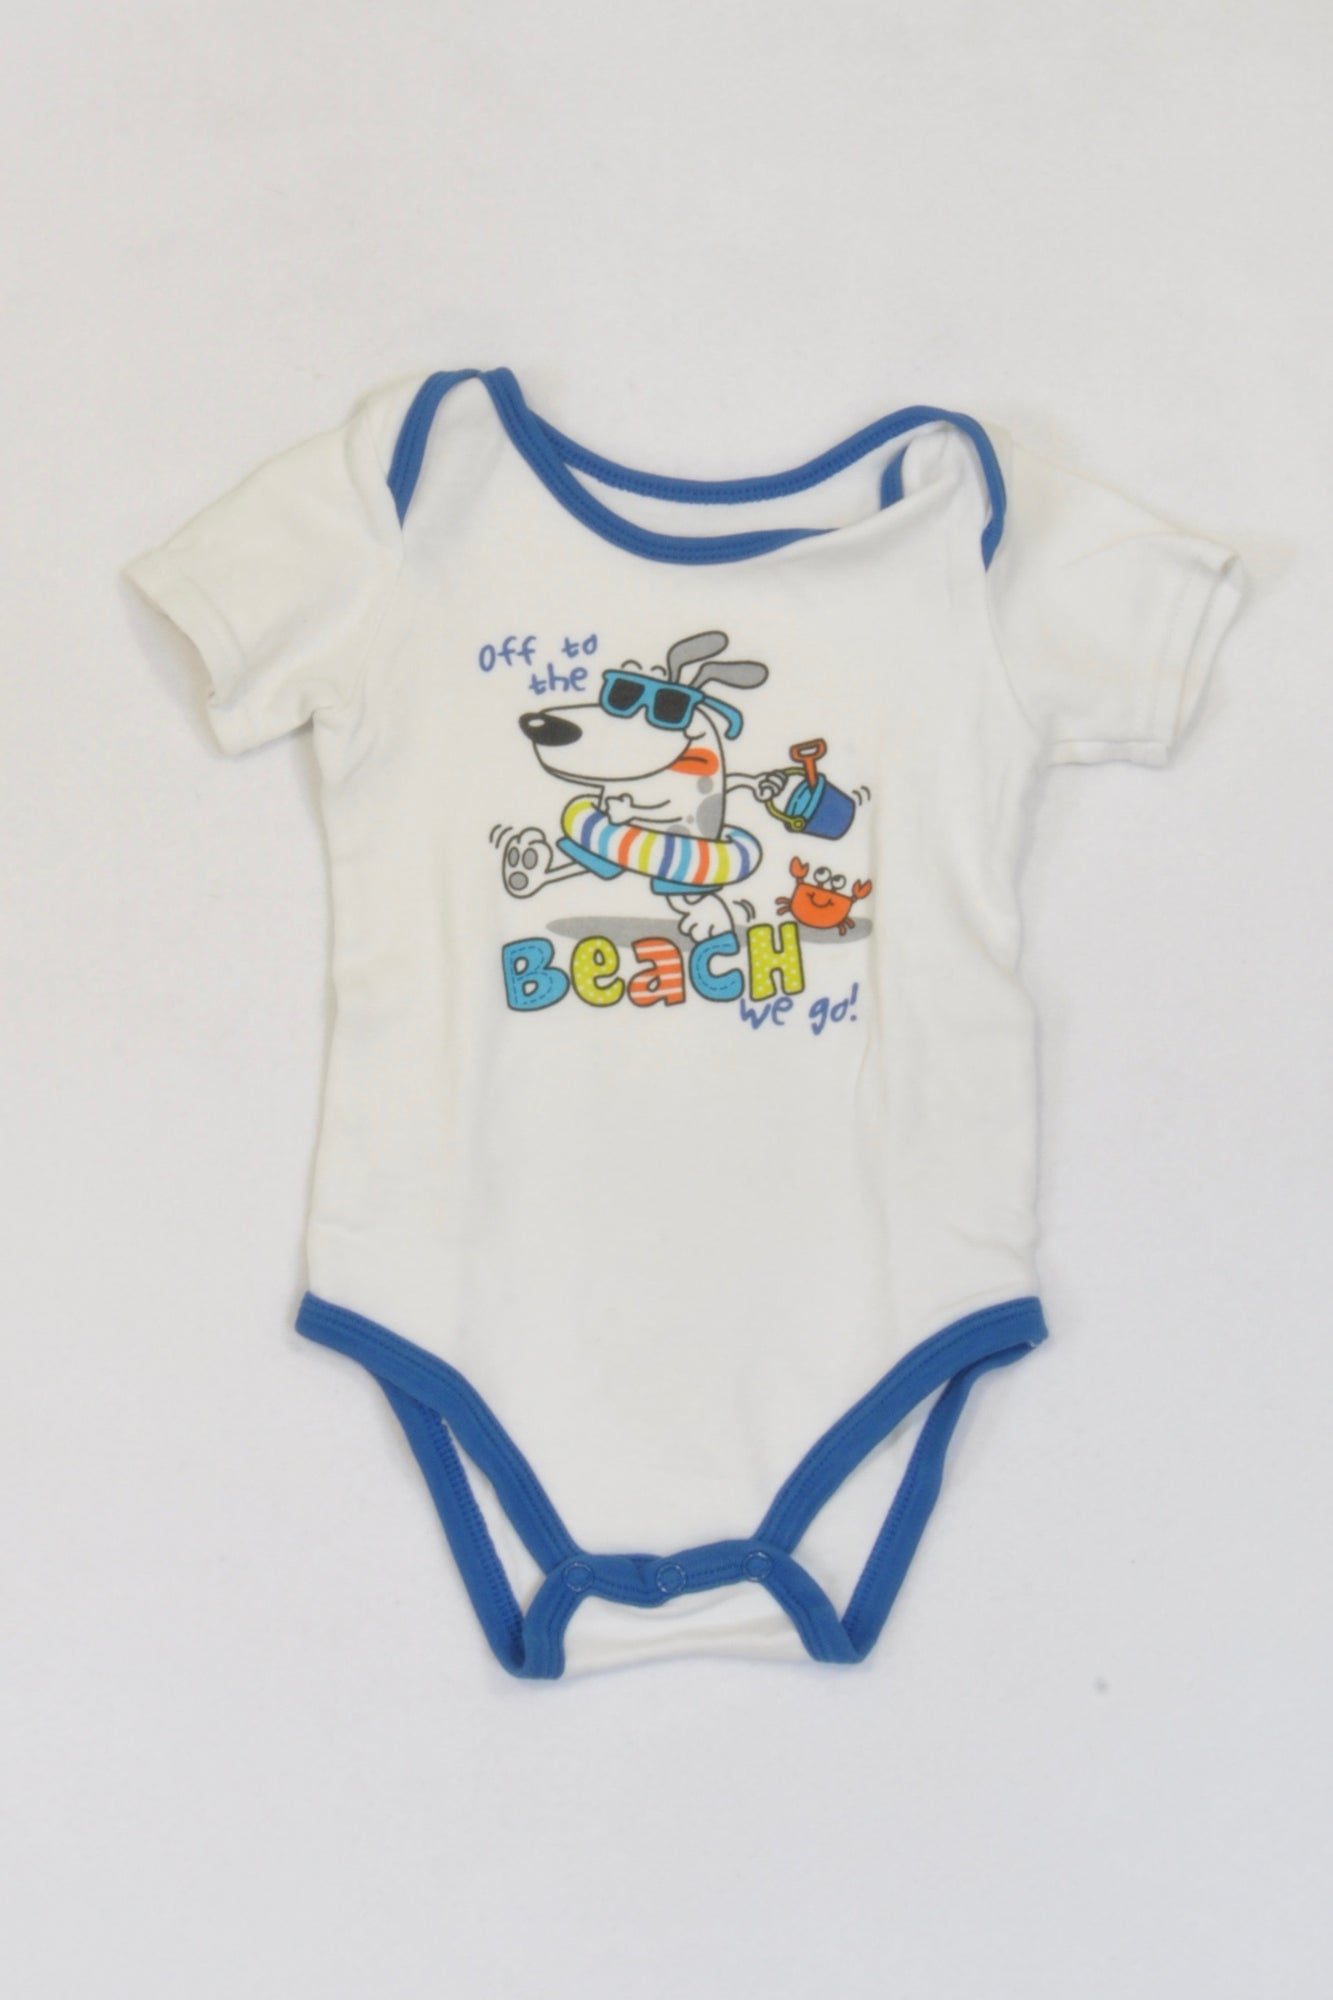 Woolworths White Beach Dog Baby Grow Boys 3-6 months